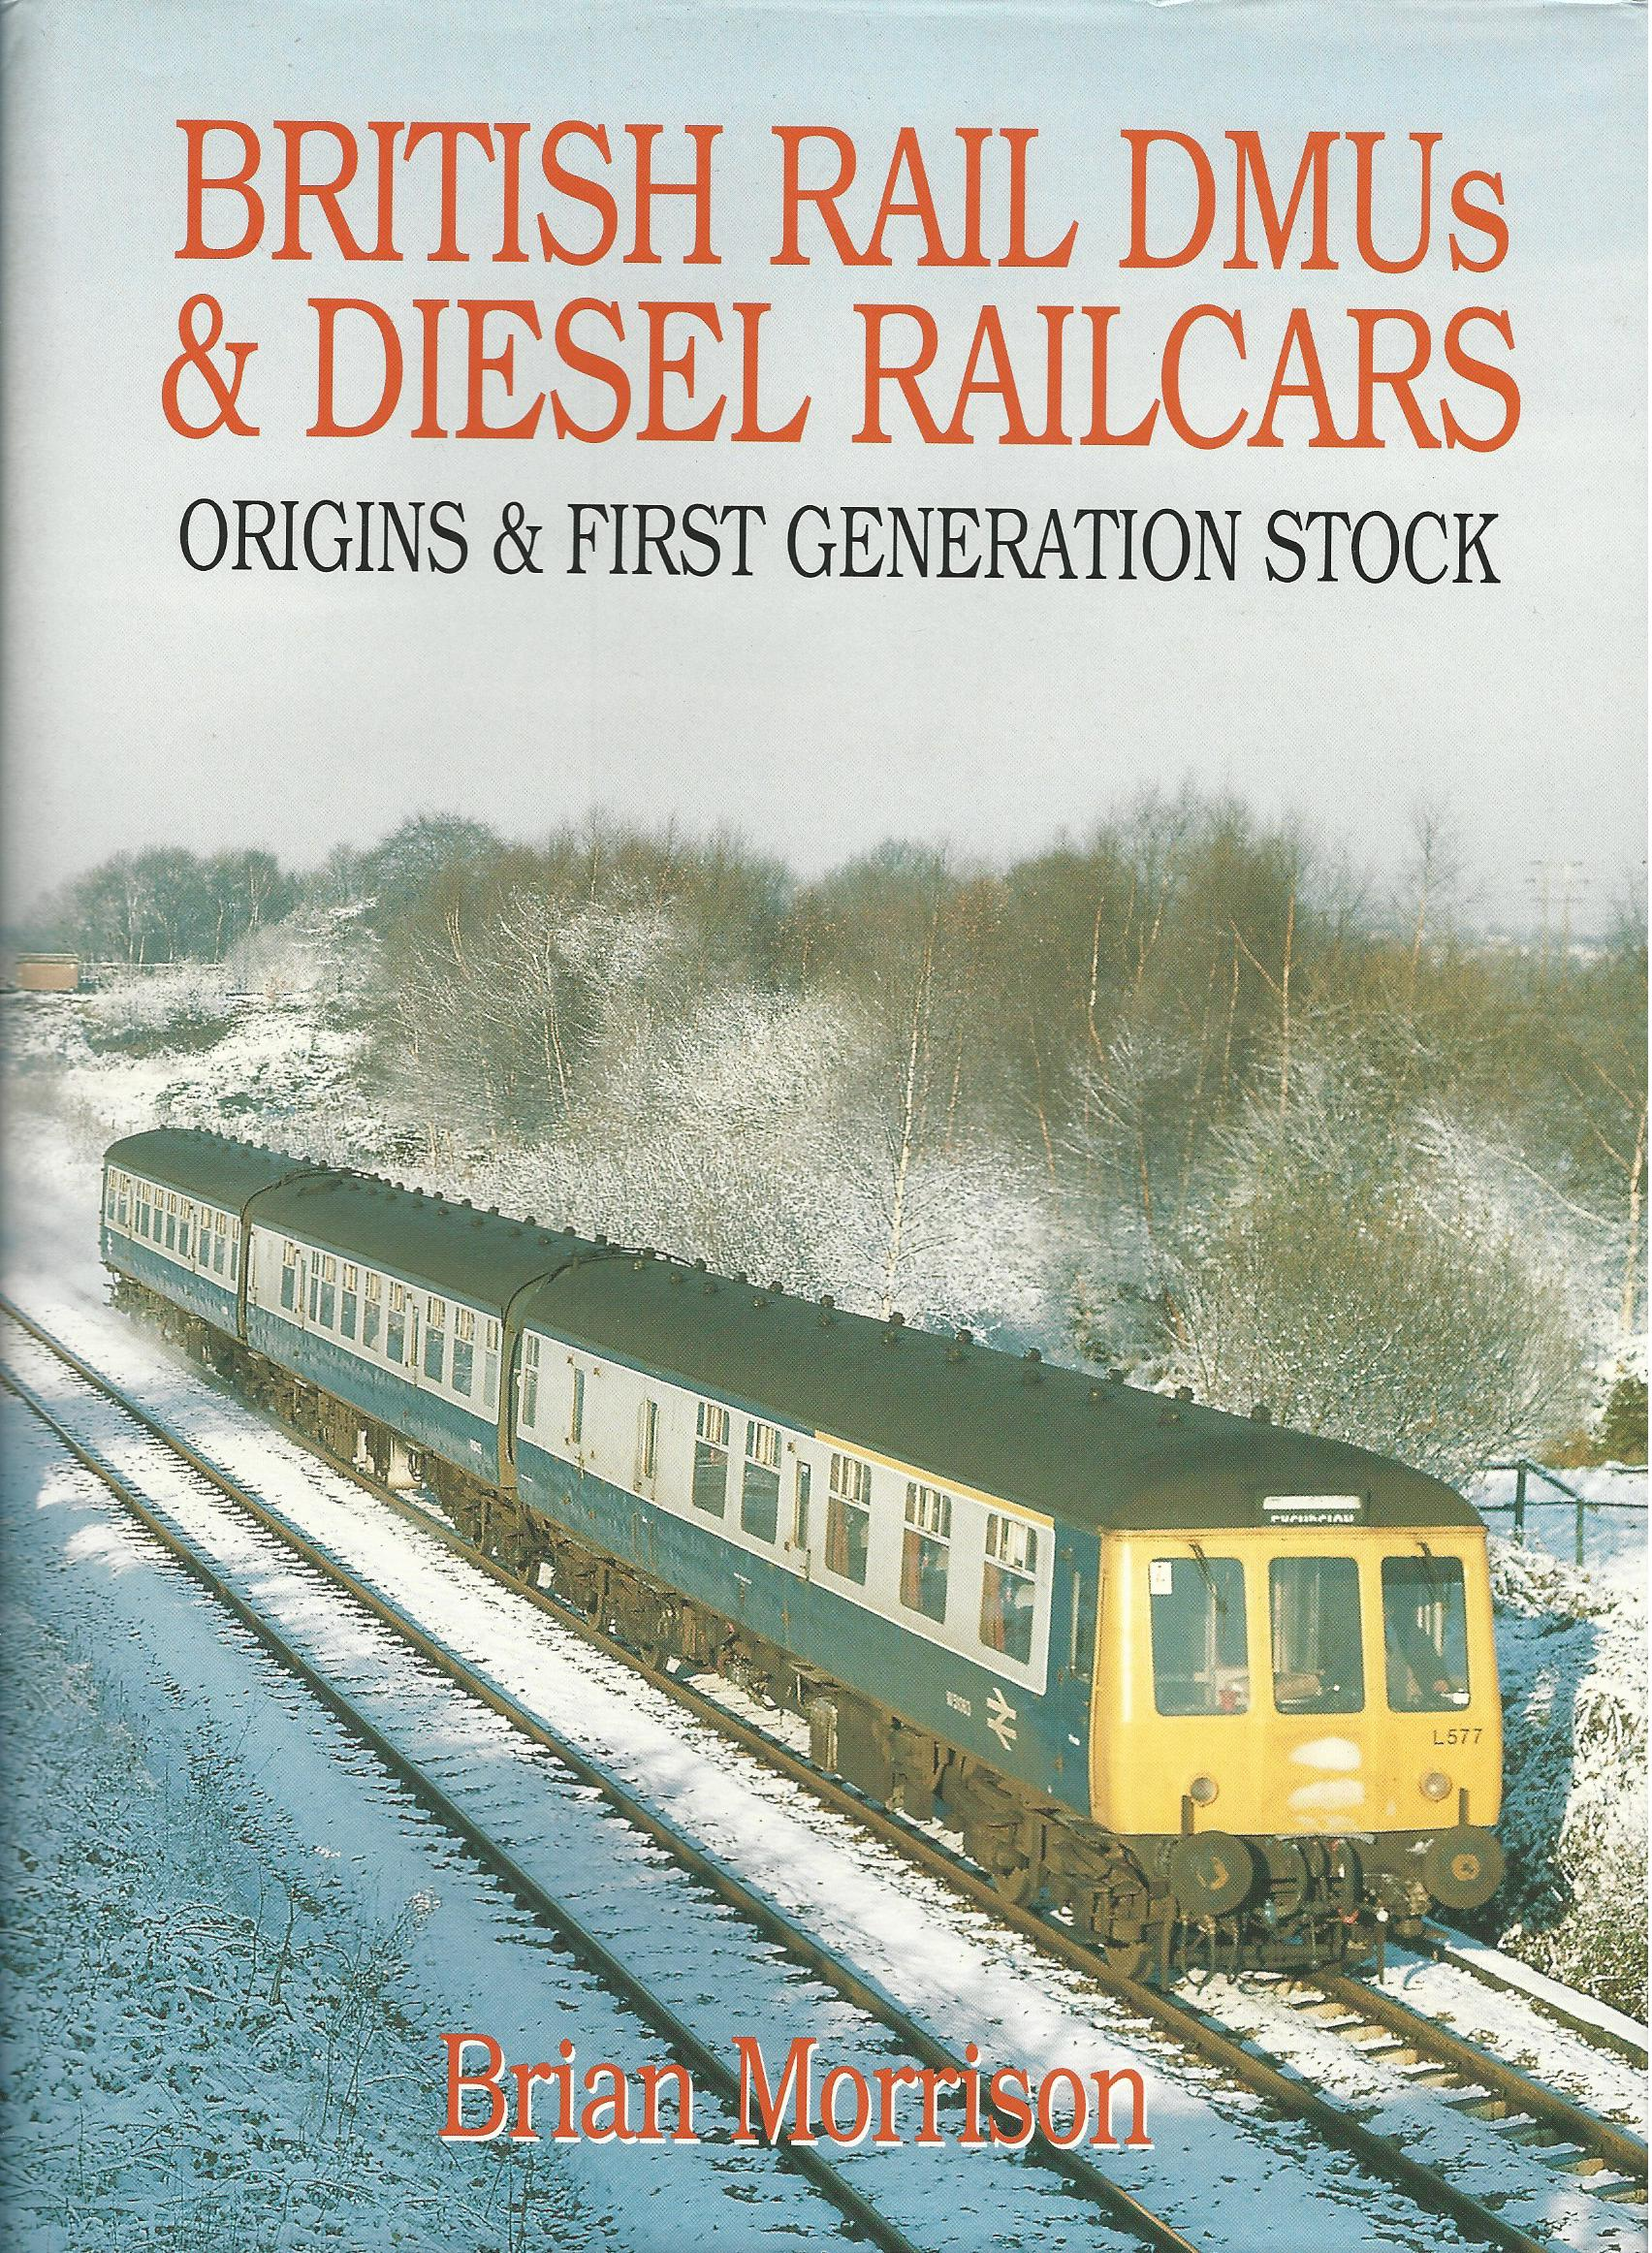 Image for British Rail DMUs & Diesel Railcars: Origins & First Generation Stock